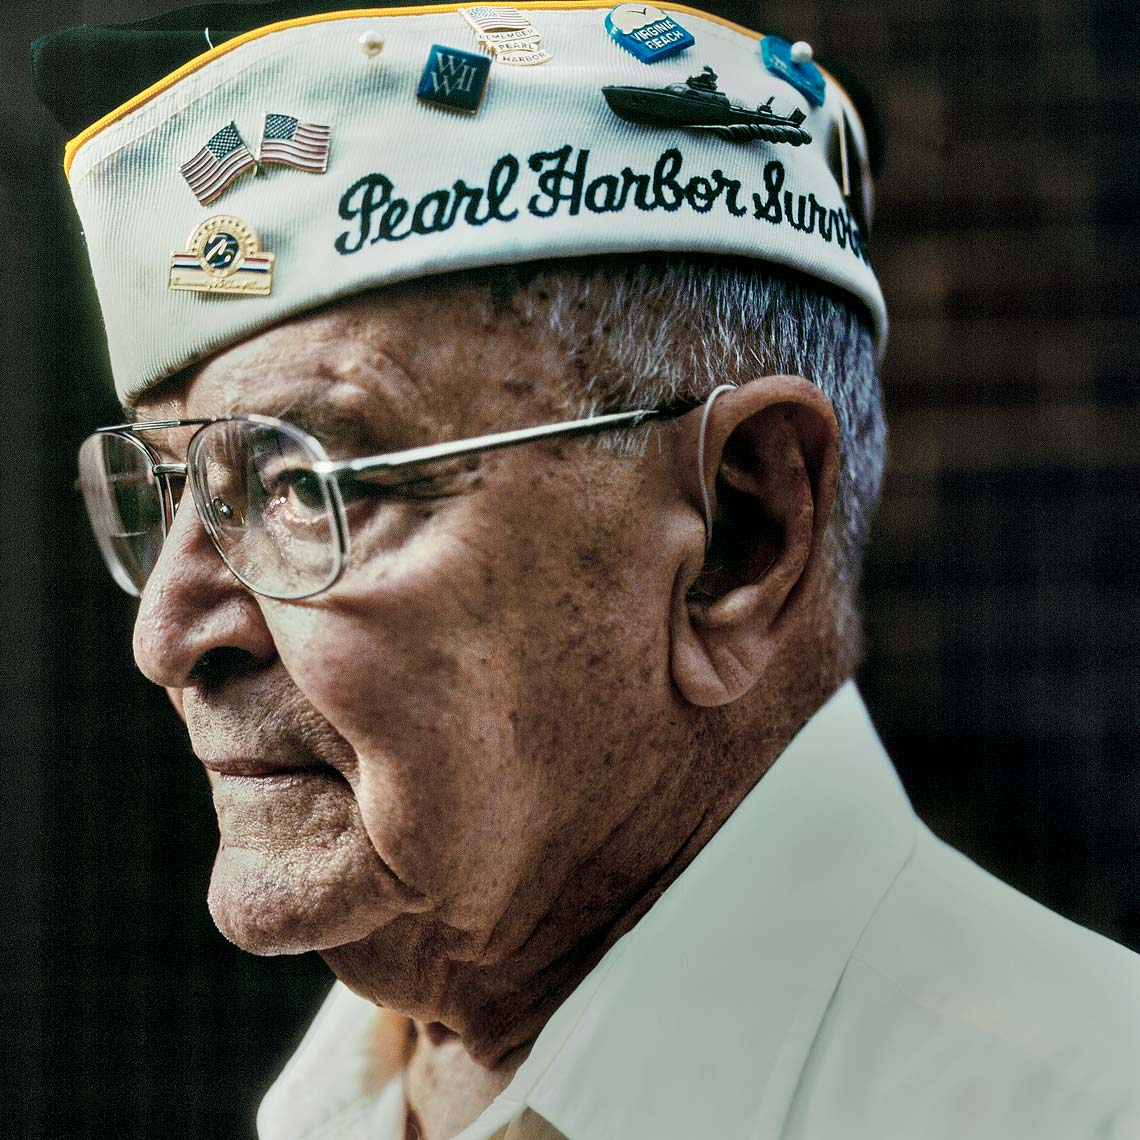 Pearl Harbor Survivor Jay Groff